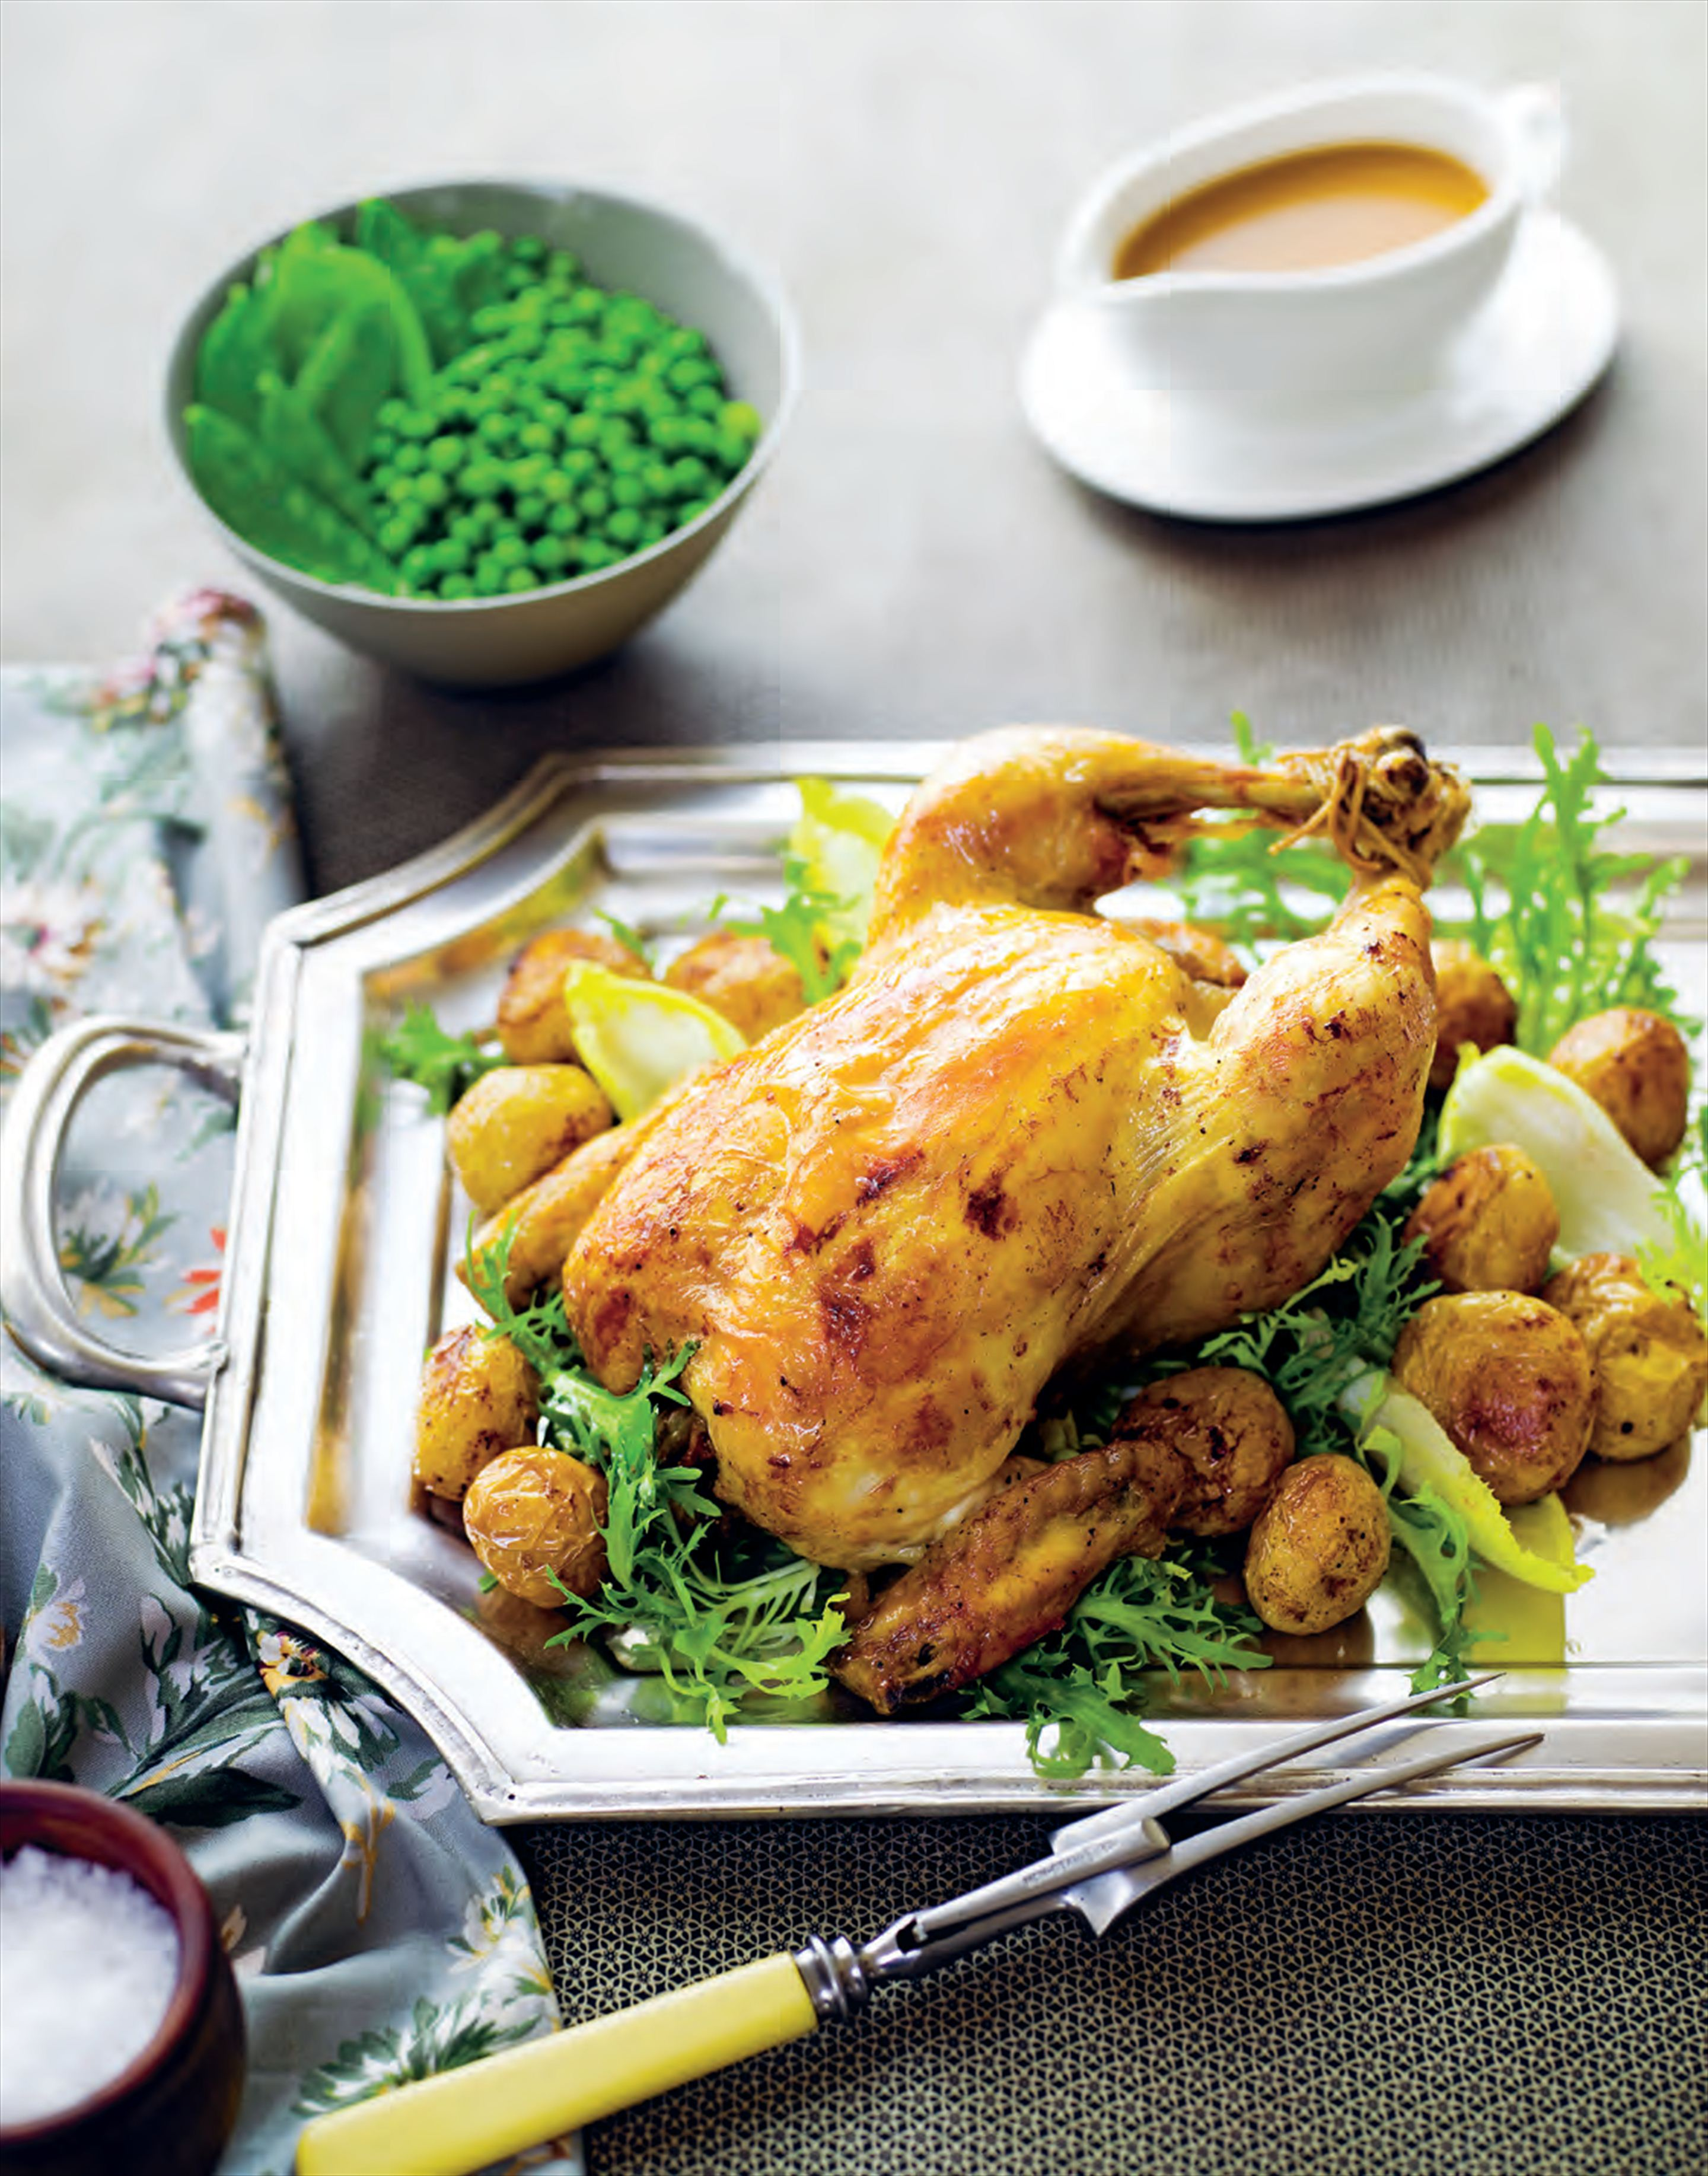 French roast chicken dinner